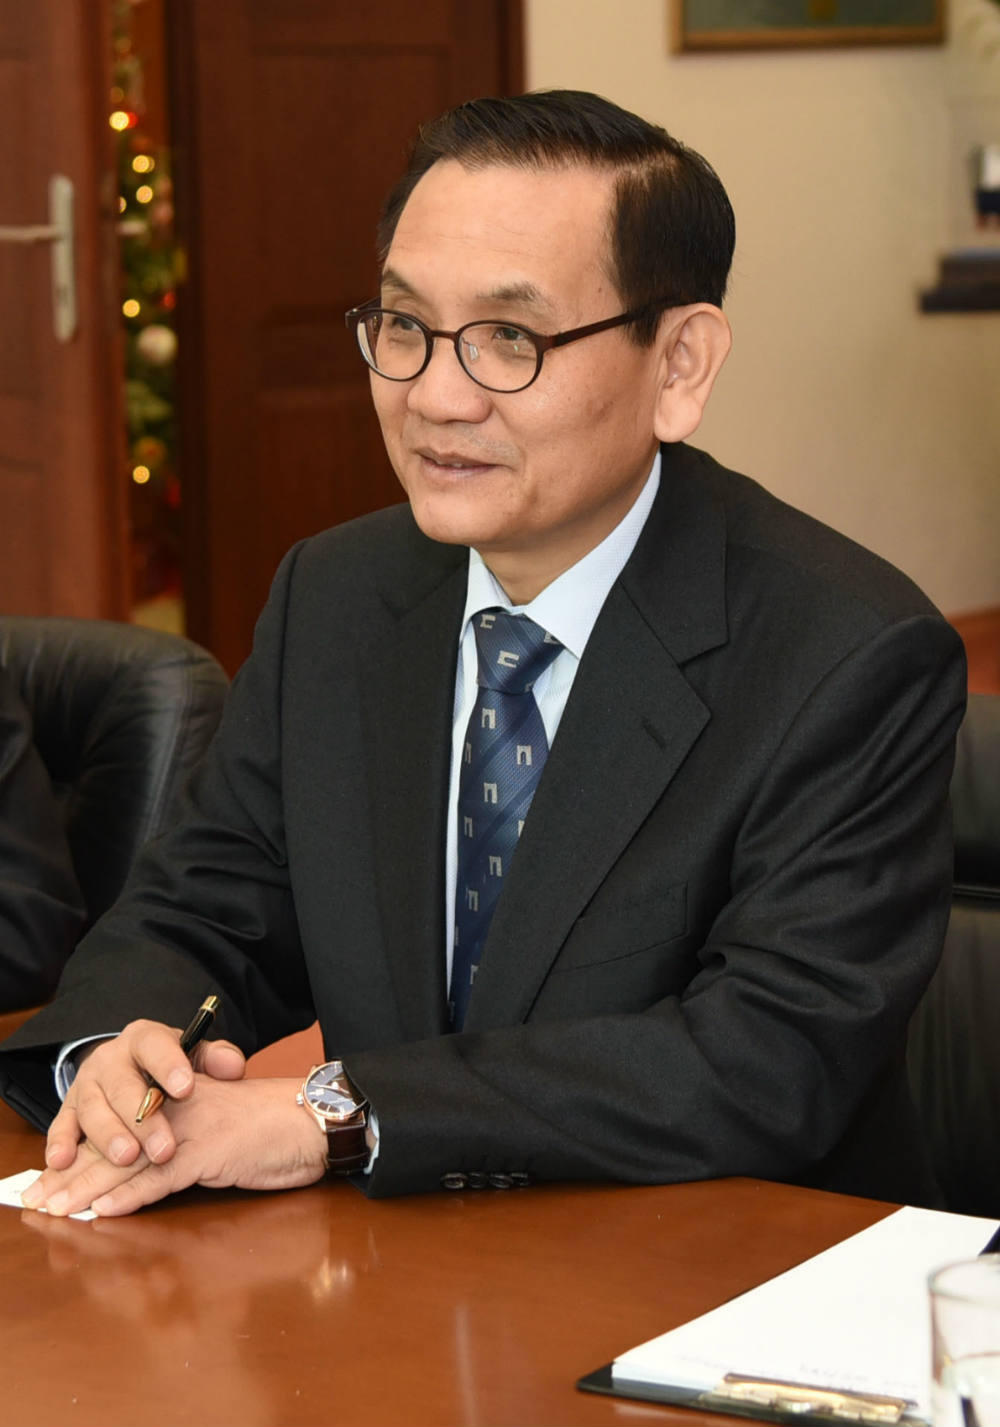 Outgoing S. Korean Ambassador to Greece sees development in bilateral ties